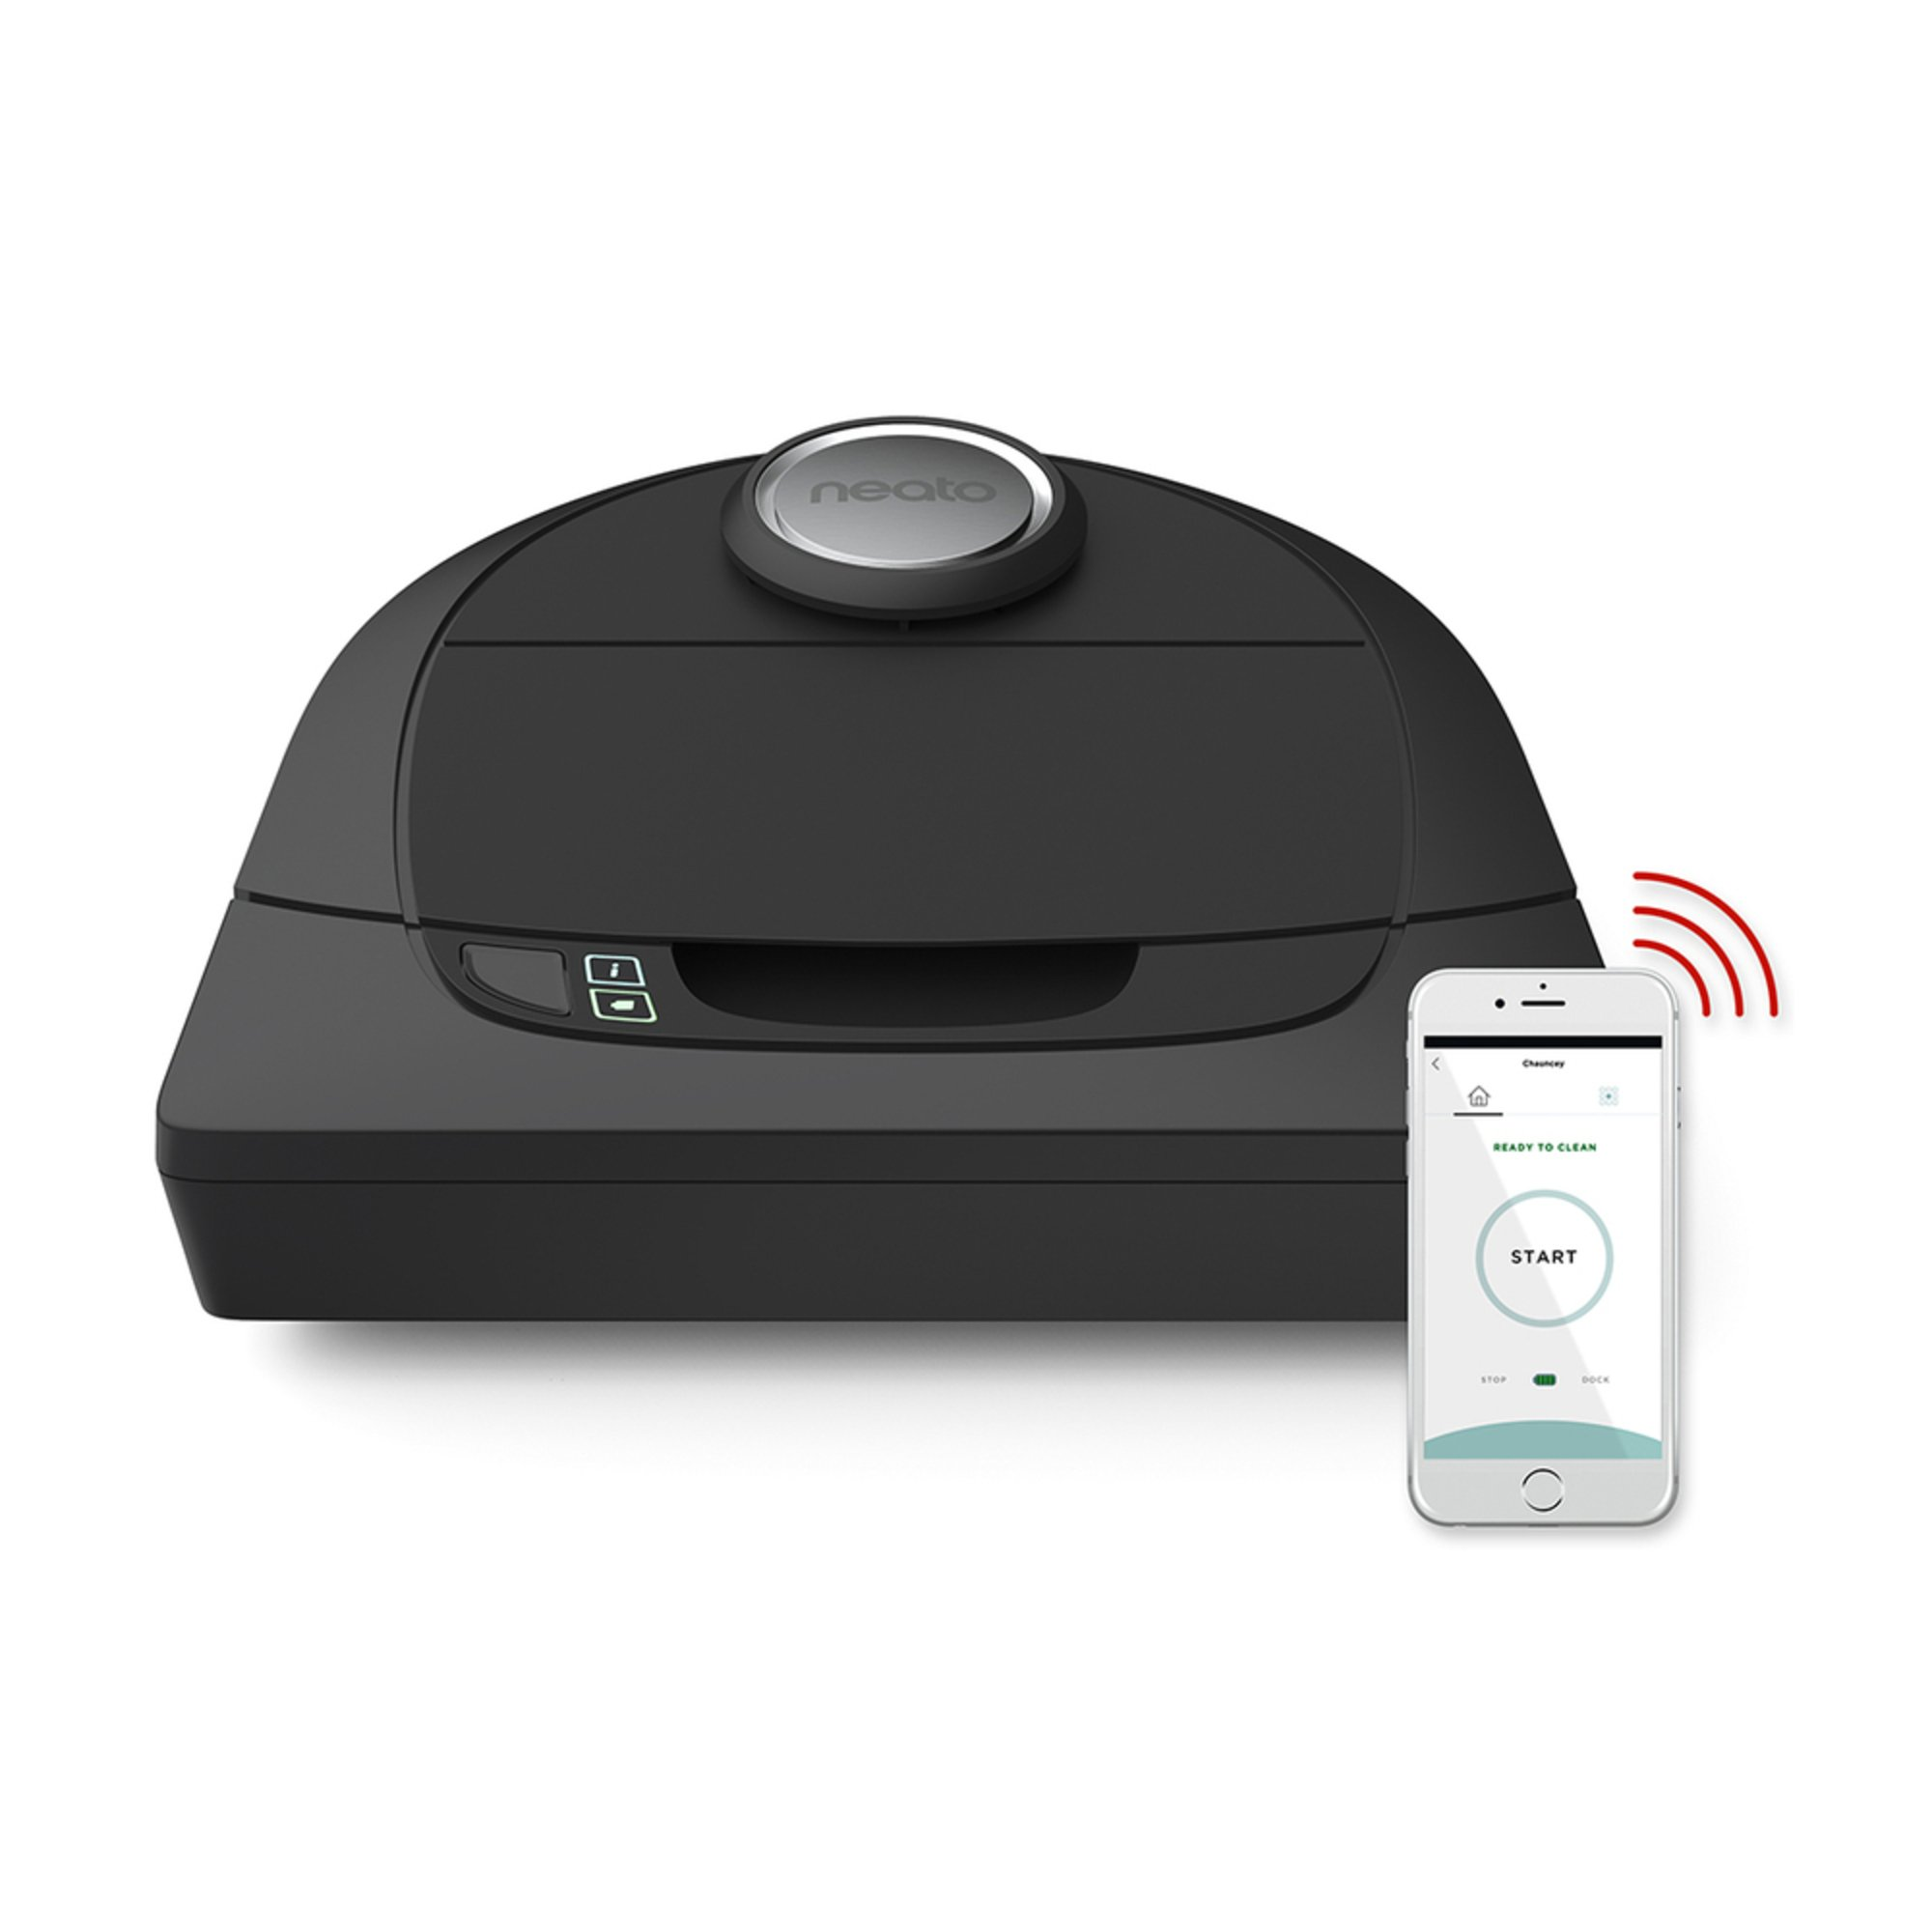 neato botvac d5 connected wi fi robot vacuum black 945 0228 robotic vacuums for the home. Black Bedroom Furniture Sets. Home Design Ideas